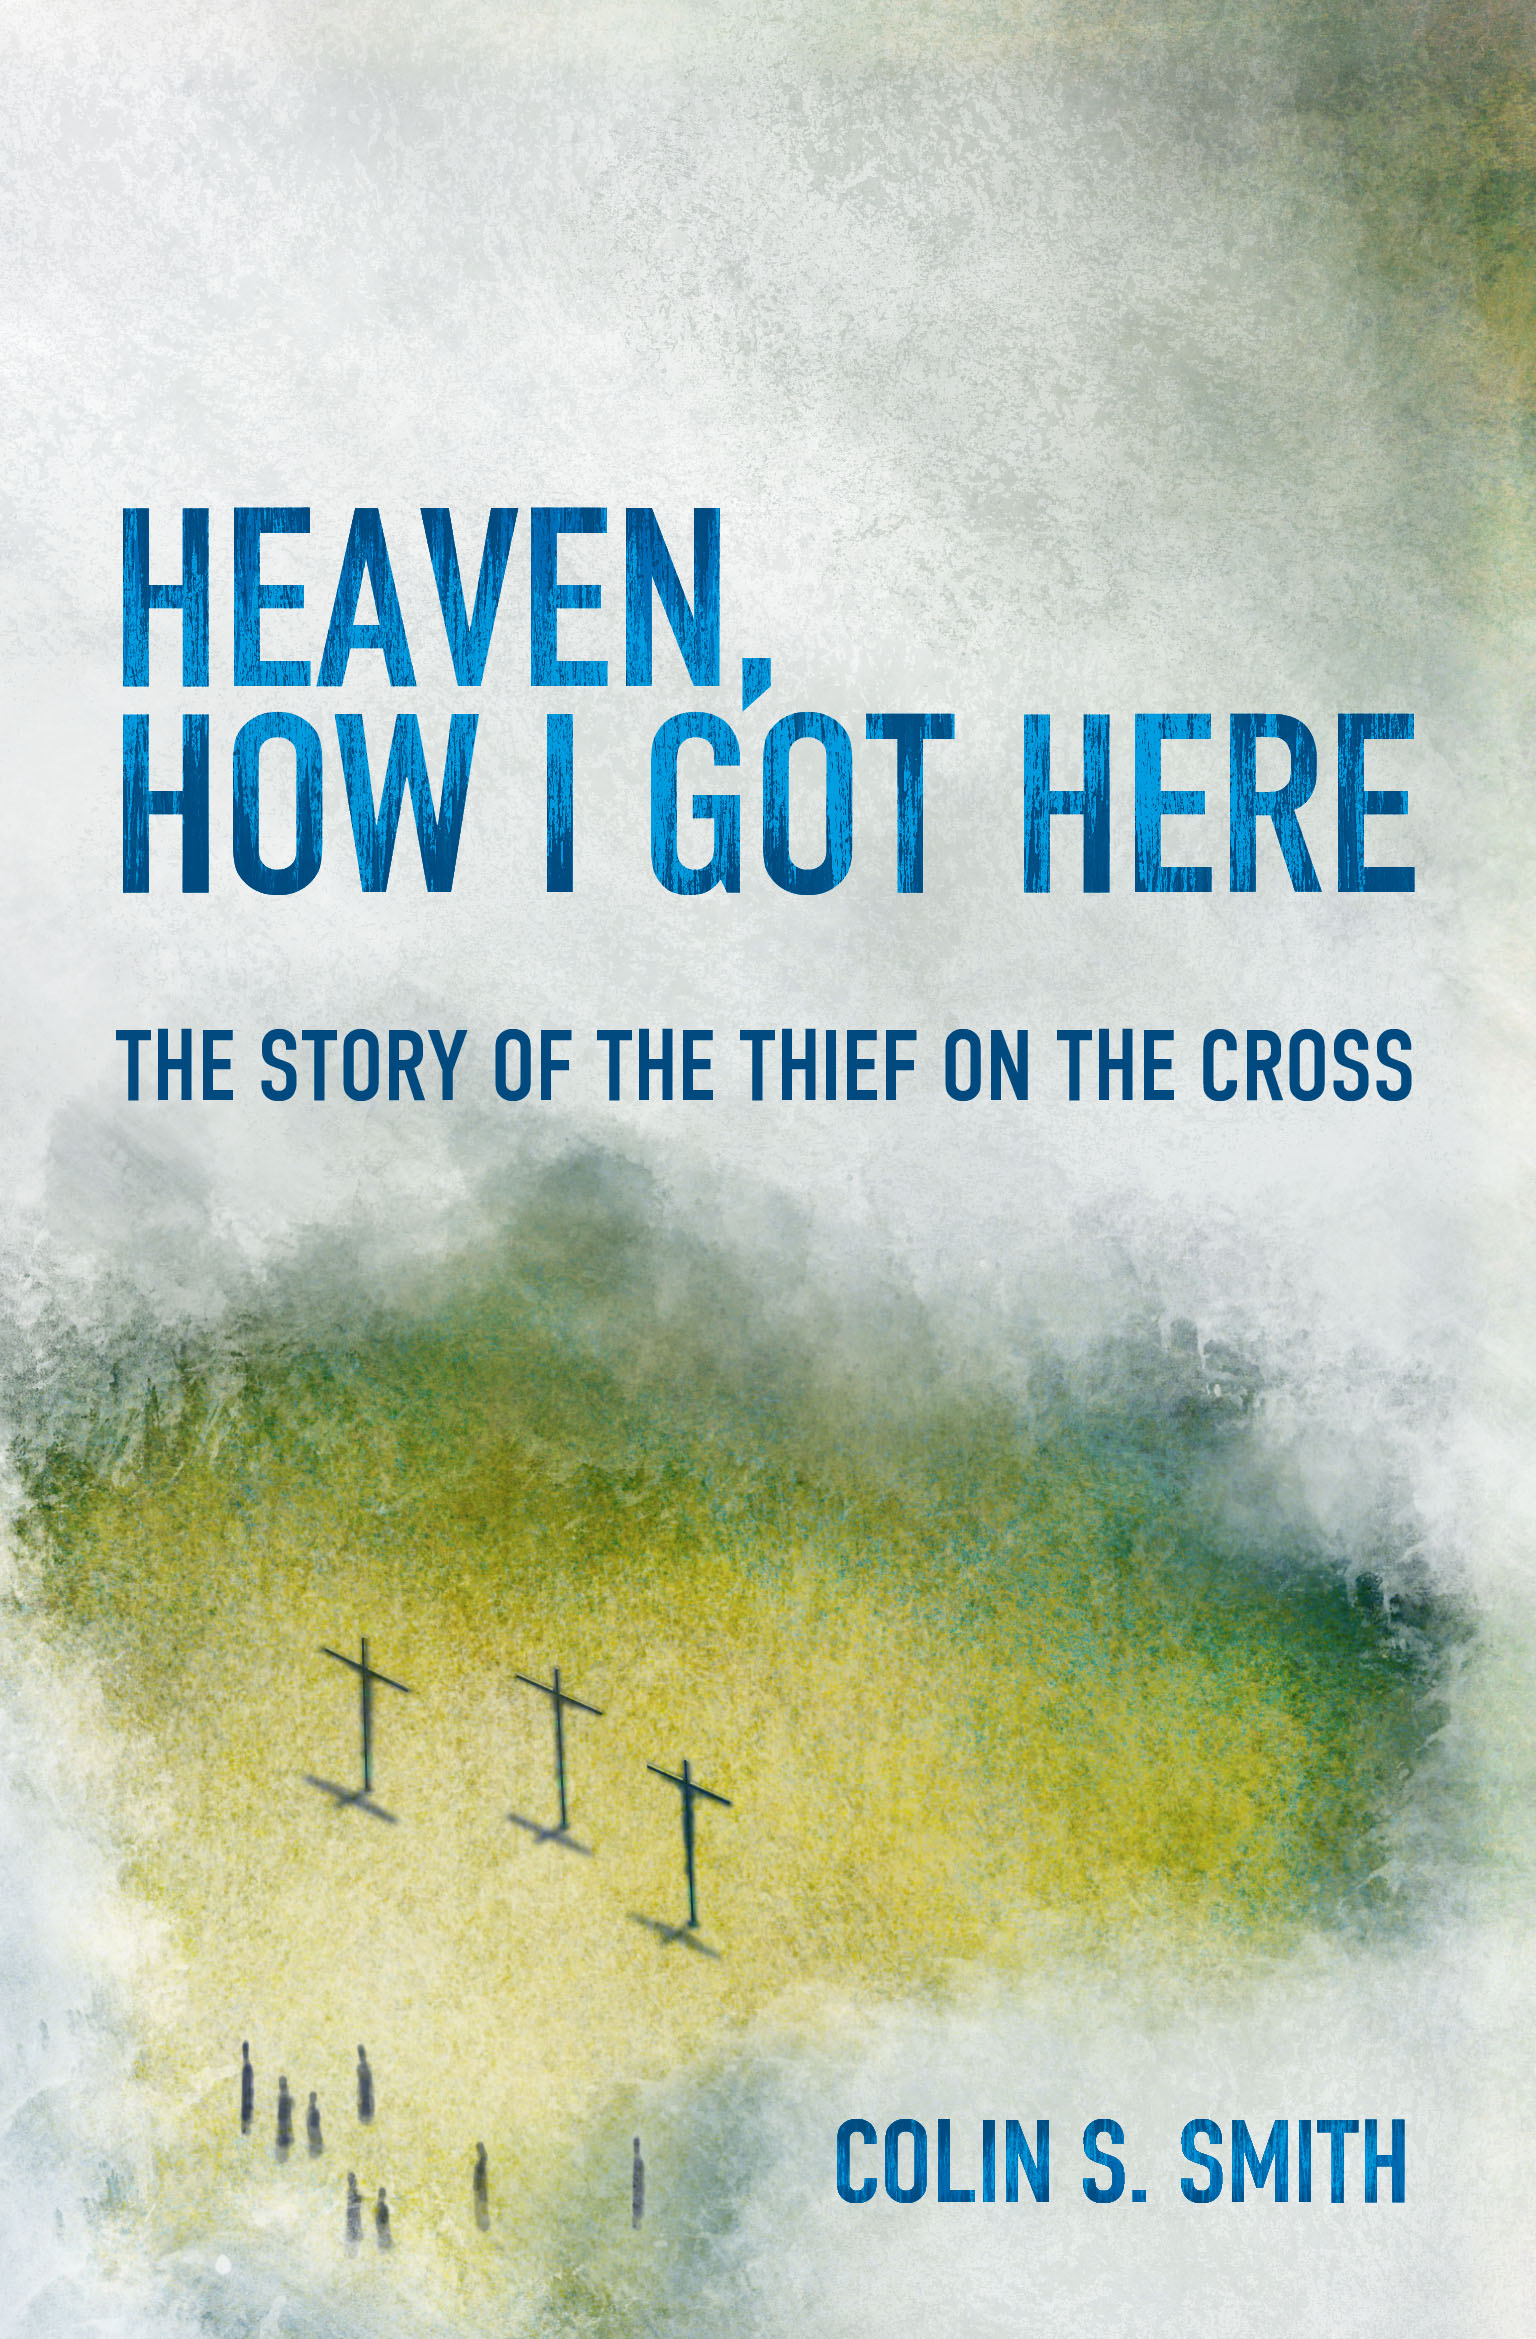 Heaven, How I Got Here Book Plus One (One for yourself, one to give away)